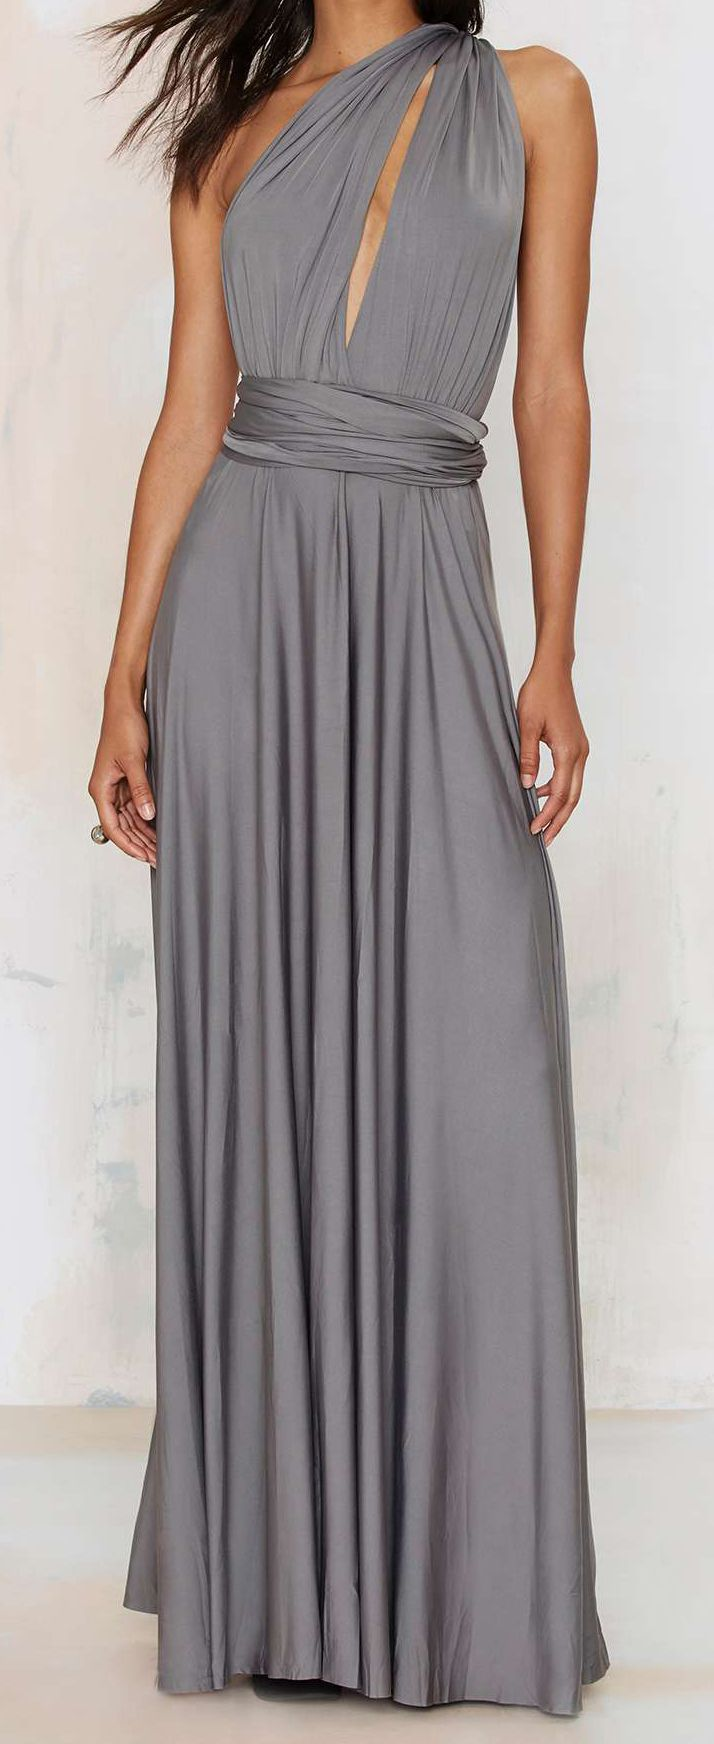 Gorgeousl neutral color bridesmaid dress that can be worn gorgeousl neutral color bridesmaid dress that can be worn different ways ombrellifo Choice Image